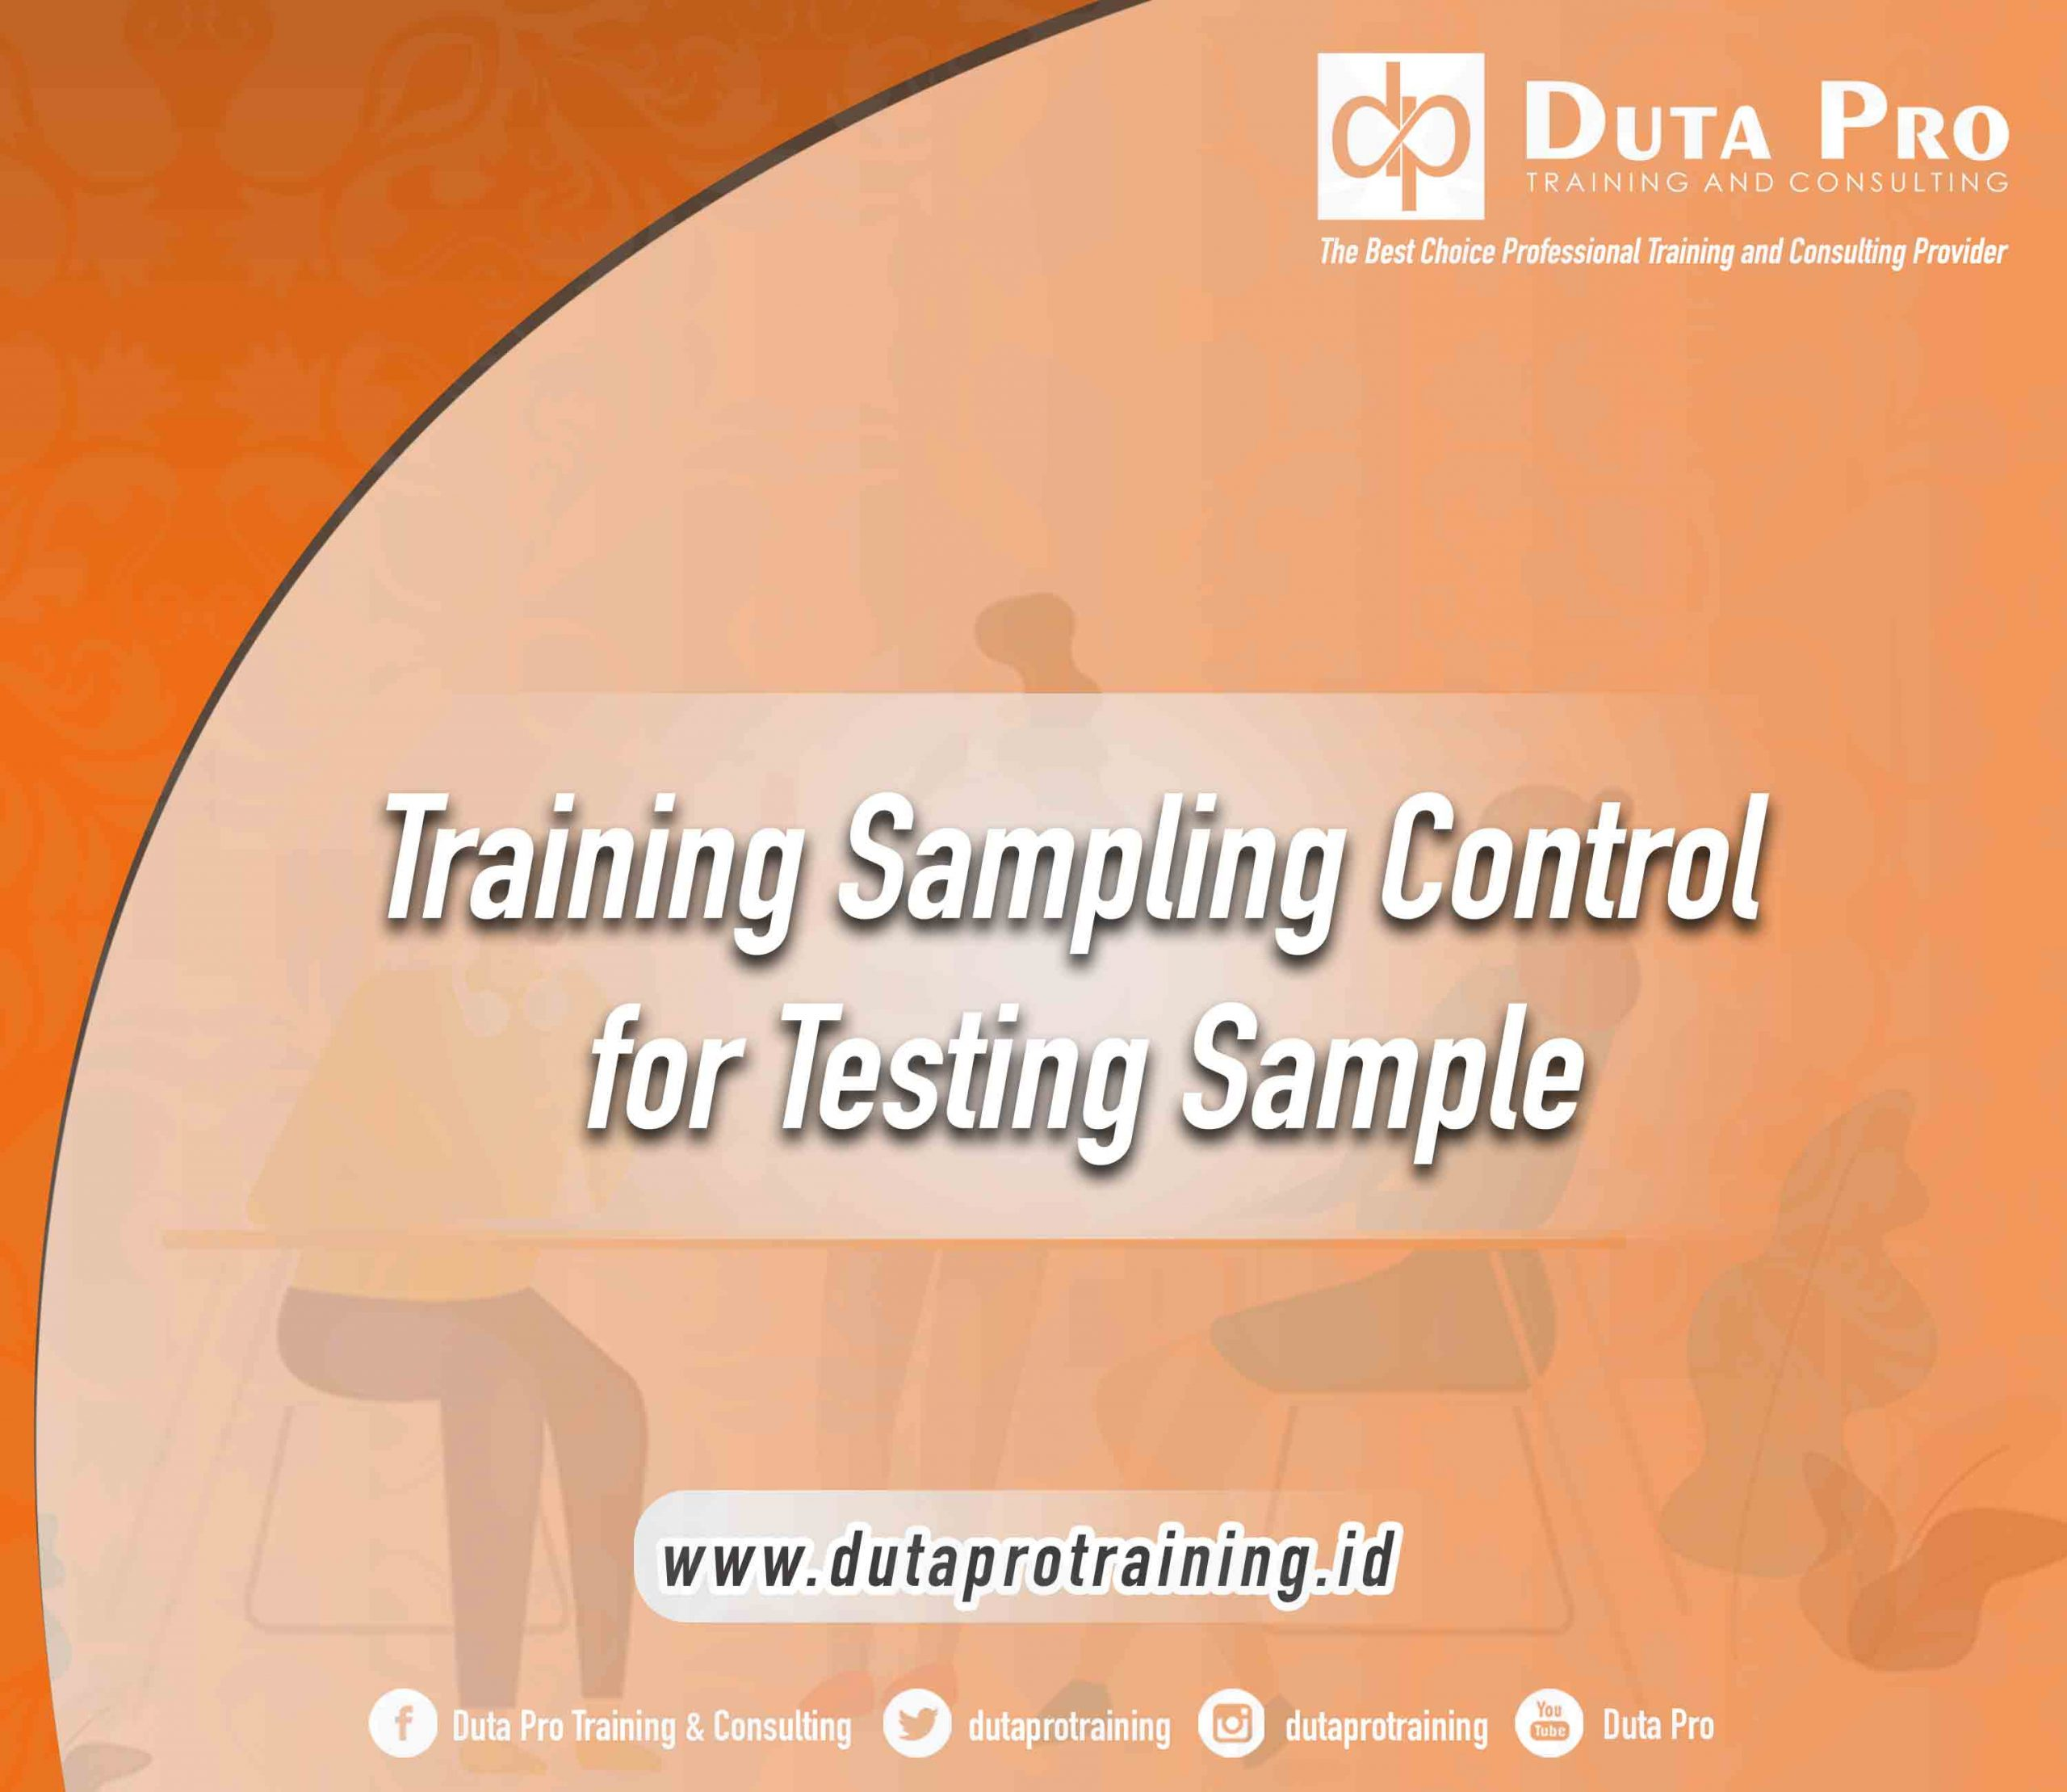 Training Sampling Control for Testing Sample